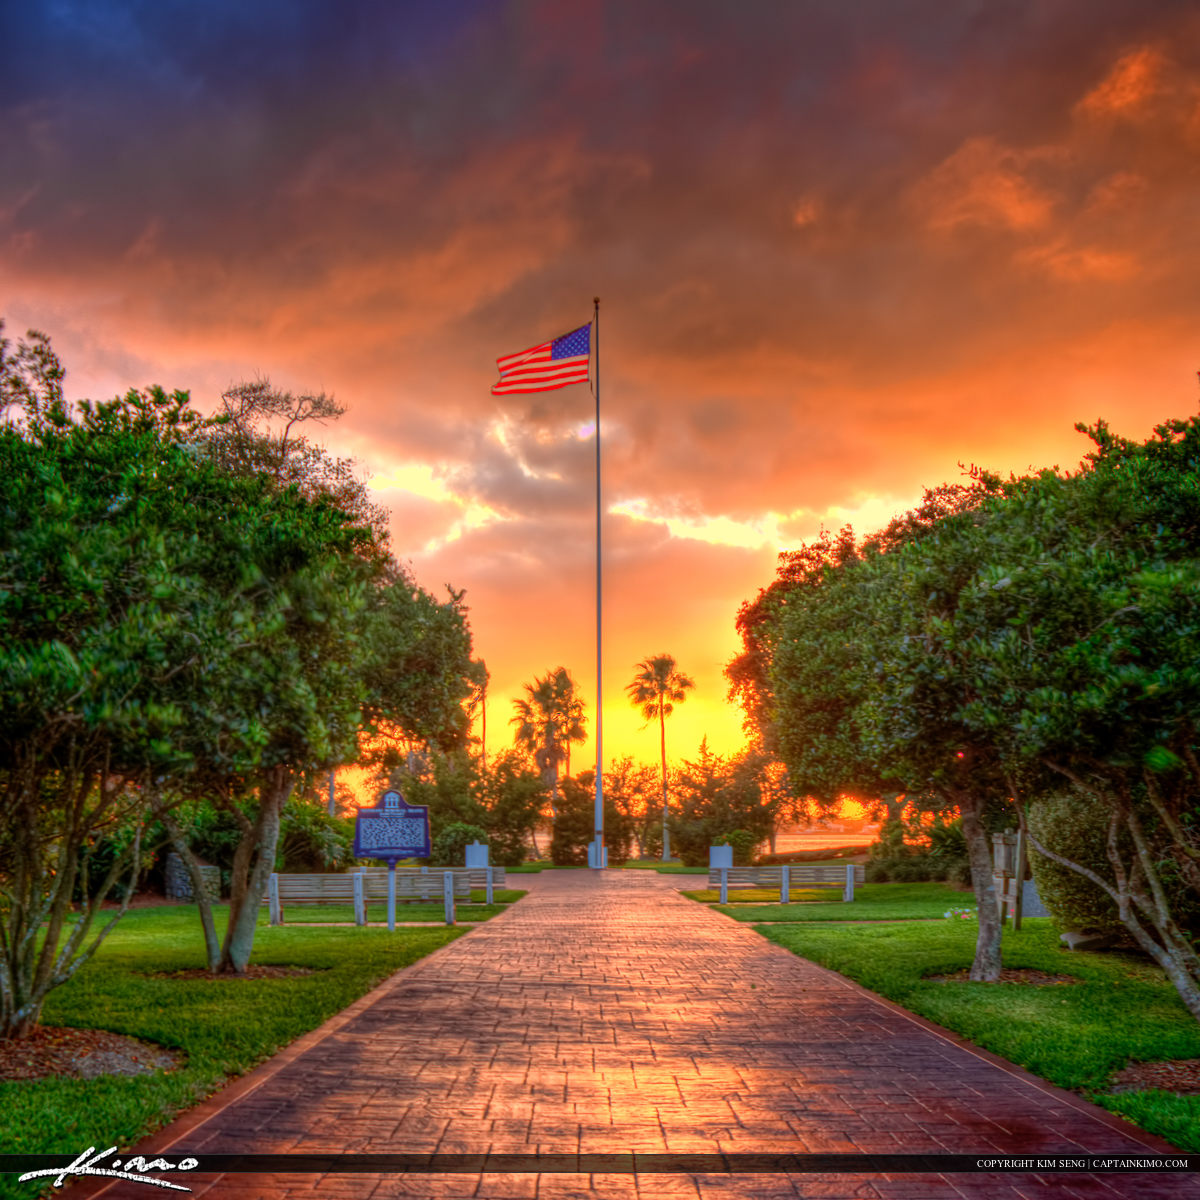 Vero Beach American Flag at Memorial Park